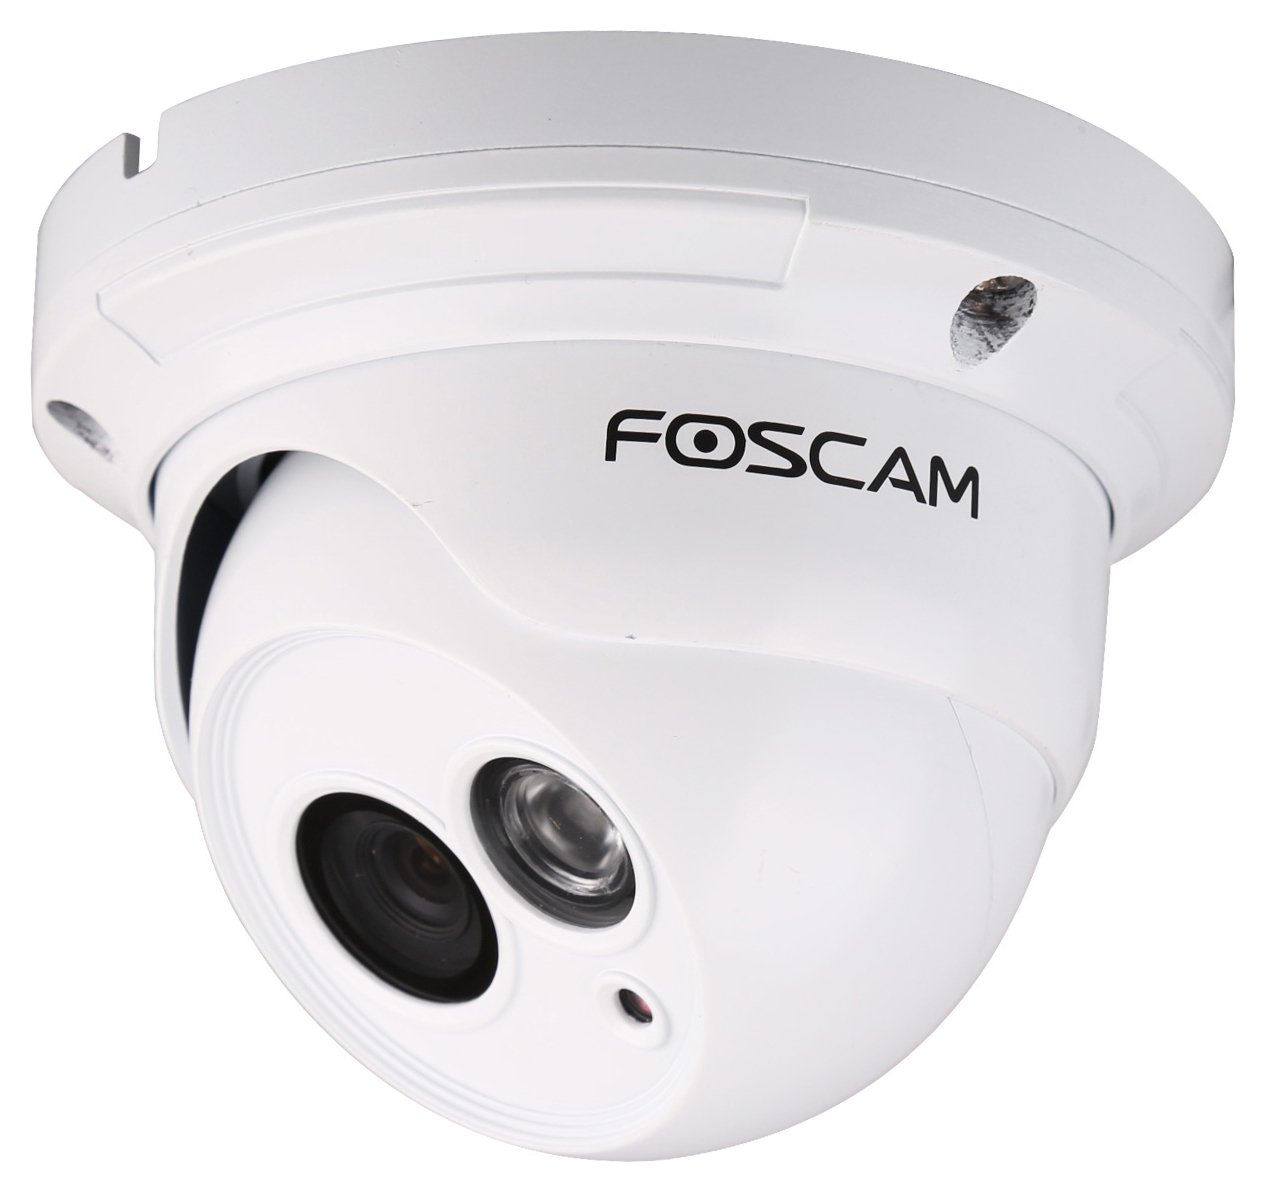 Image of Foscam - FI9853EP 720P HD PoE Wired IP Security CCTV Camera